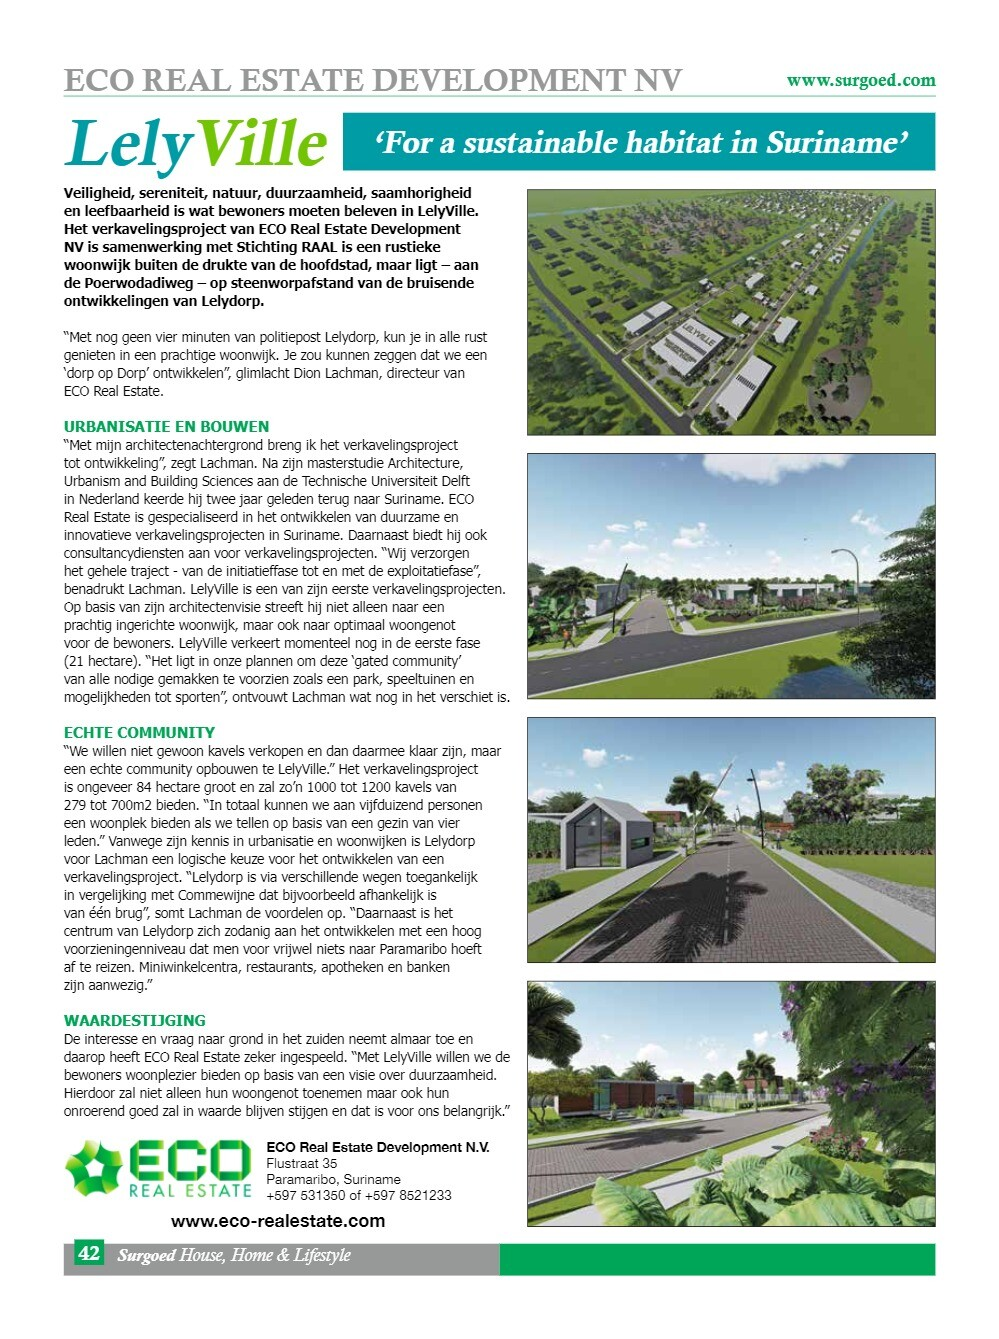 LelyVille 'For a sustainable habitat in Suriname'